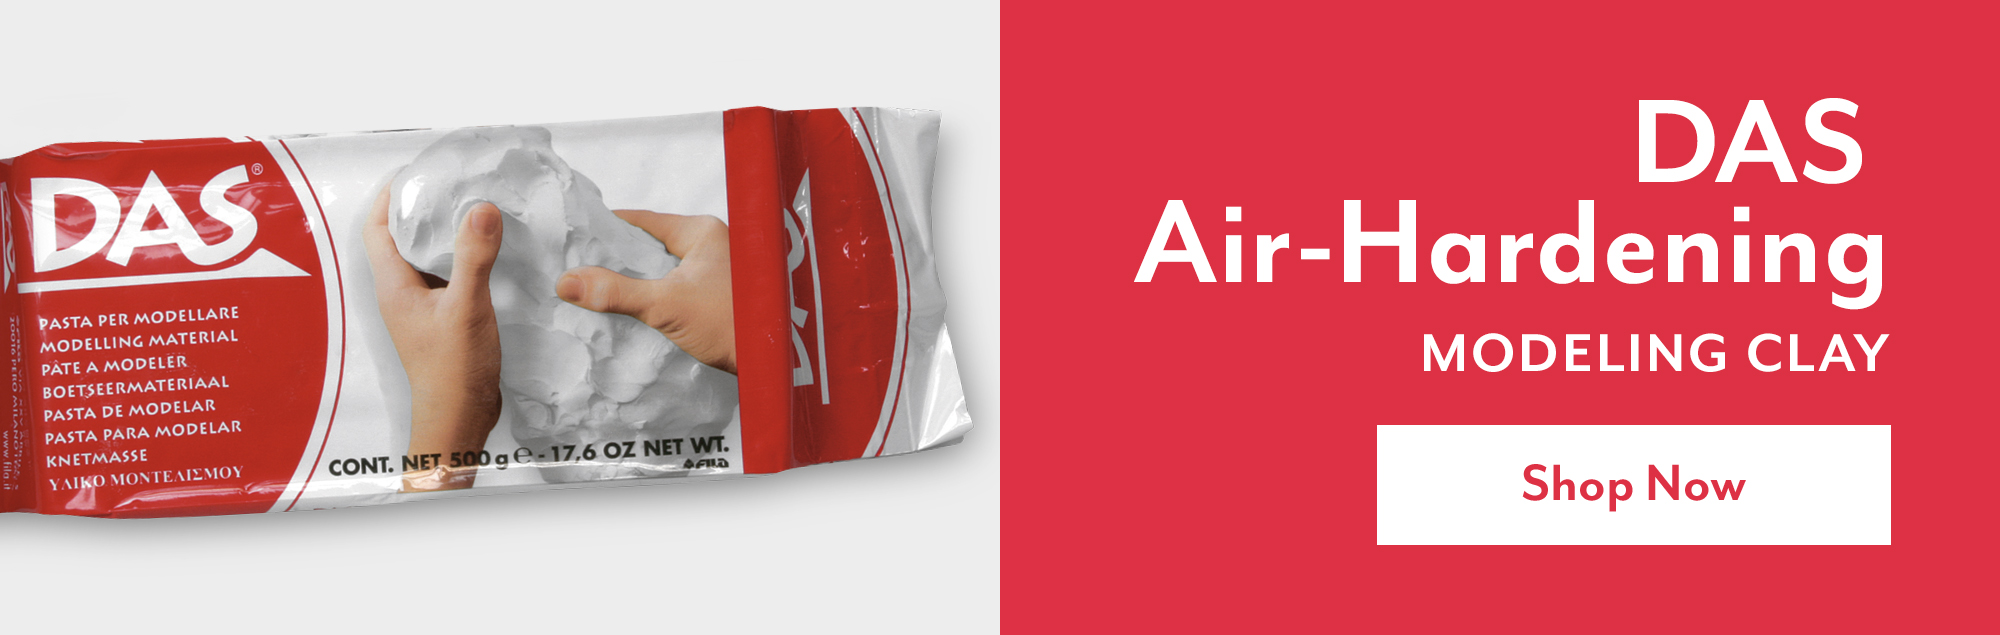 DAS Air-Hardening Modeling Clay – Shop Now